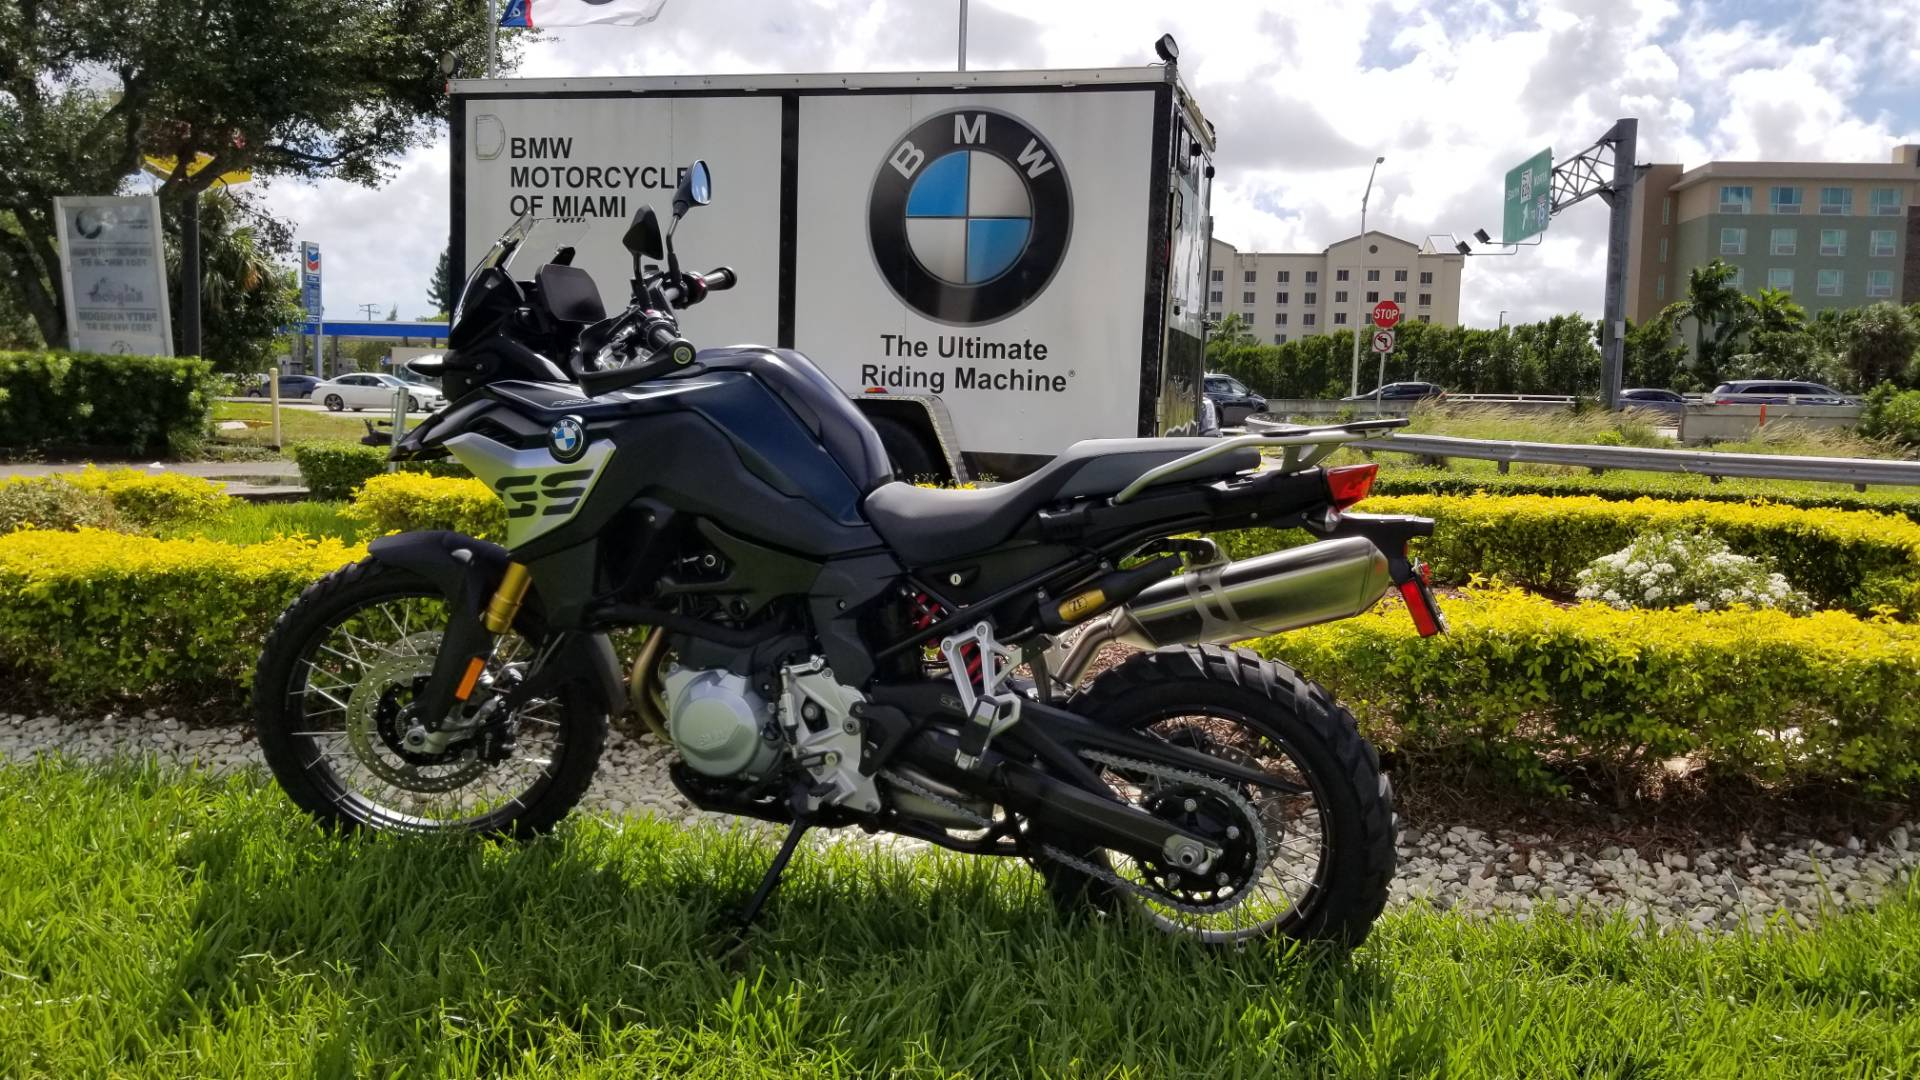 New 2019 BMW F 850 GS for sale, BMW F 850GS for sale, BMW Motorcycle F850GS, new BMW 850, Dual, BMW - Photo 5